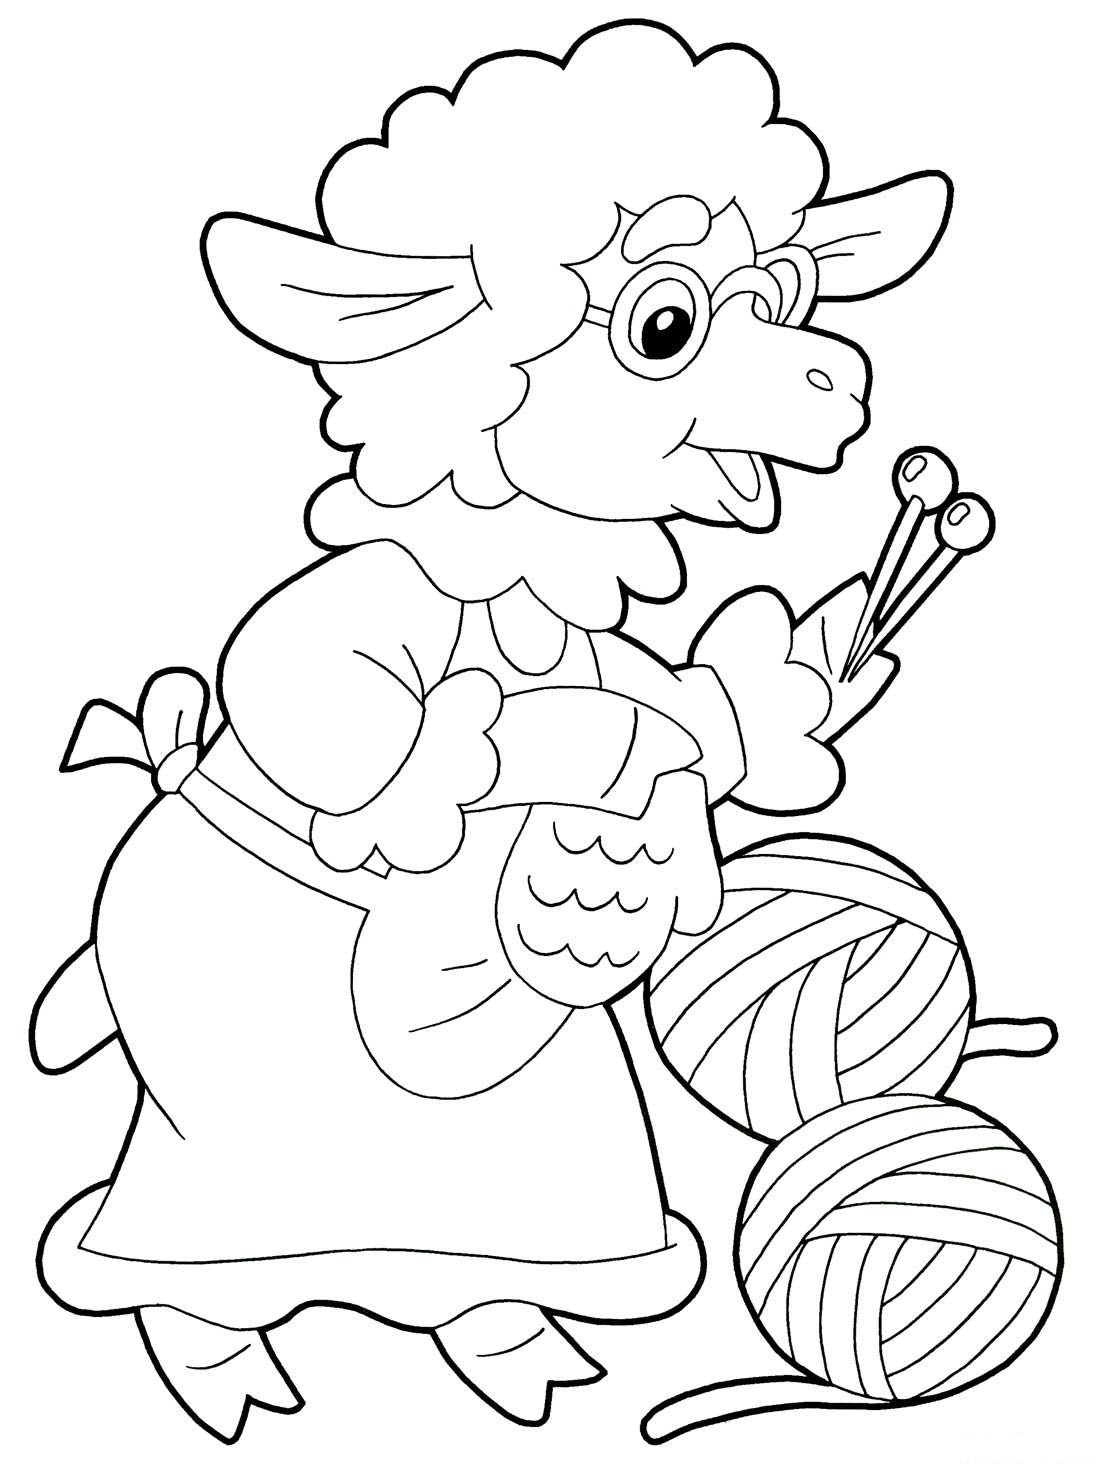 coloring book sheep face sheep coloring pages print coloring 2019 sheep coloring book